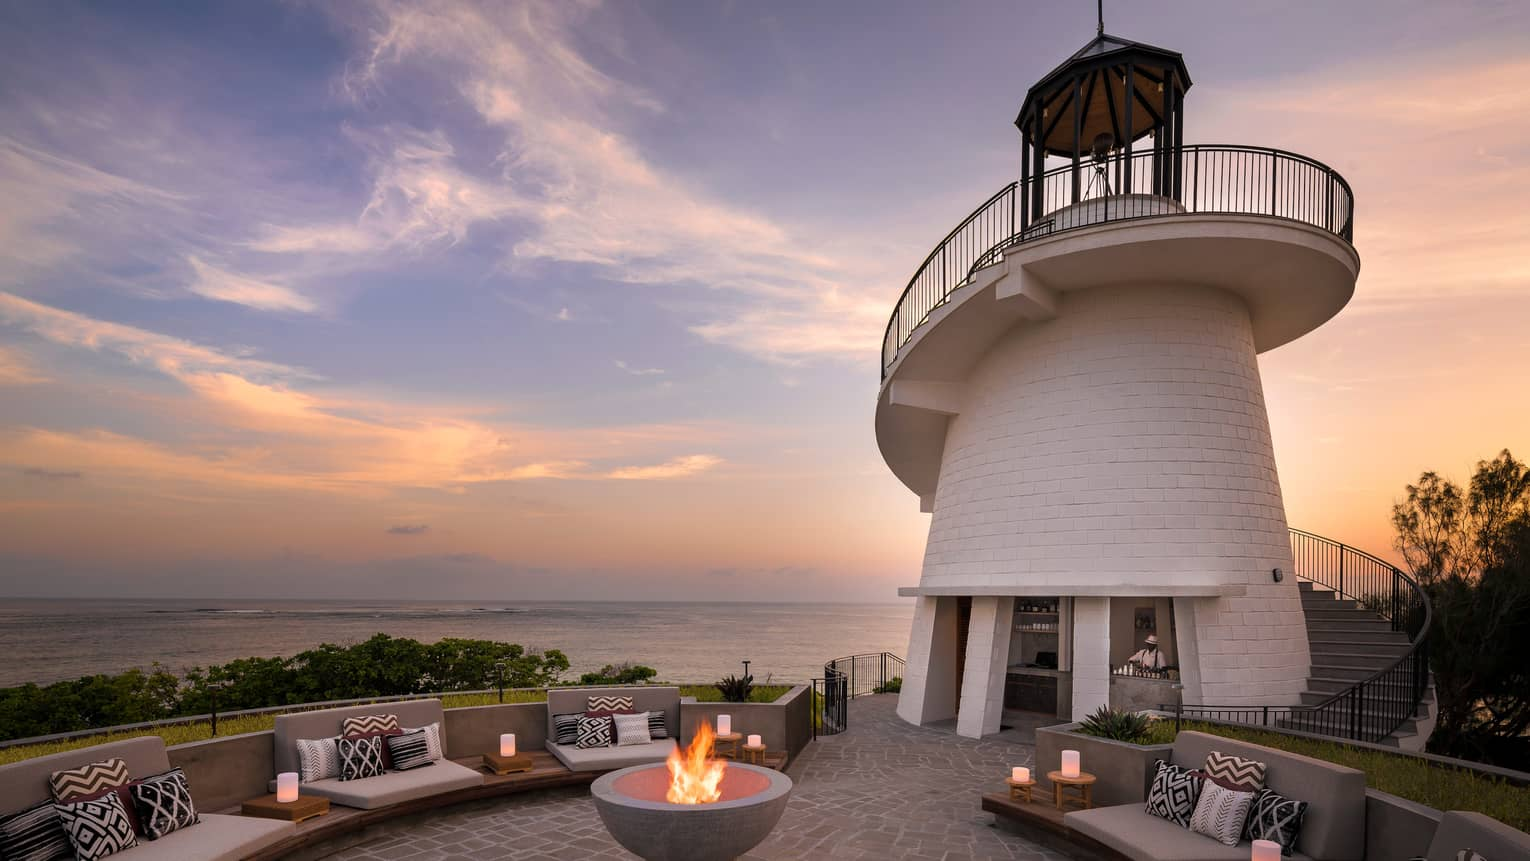 Lighthouse Restaurant illuminated at sunset with fire pit and luminaries